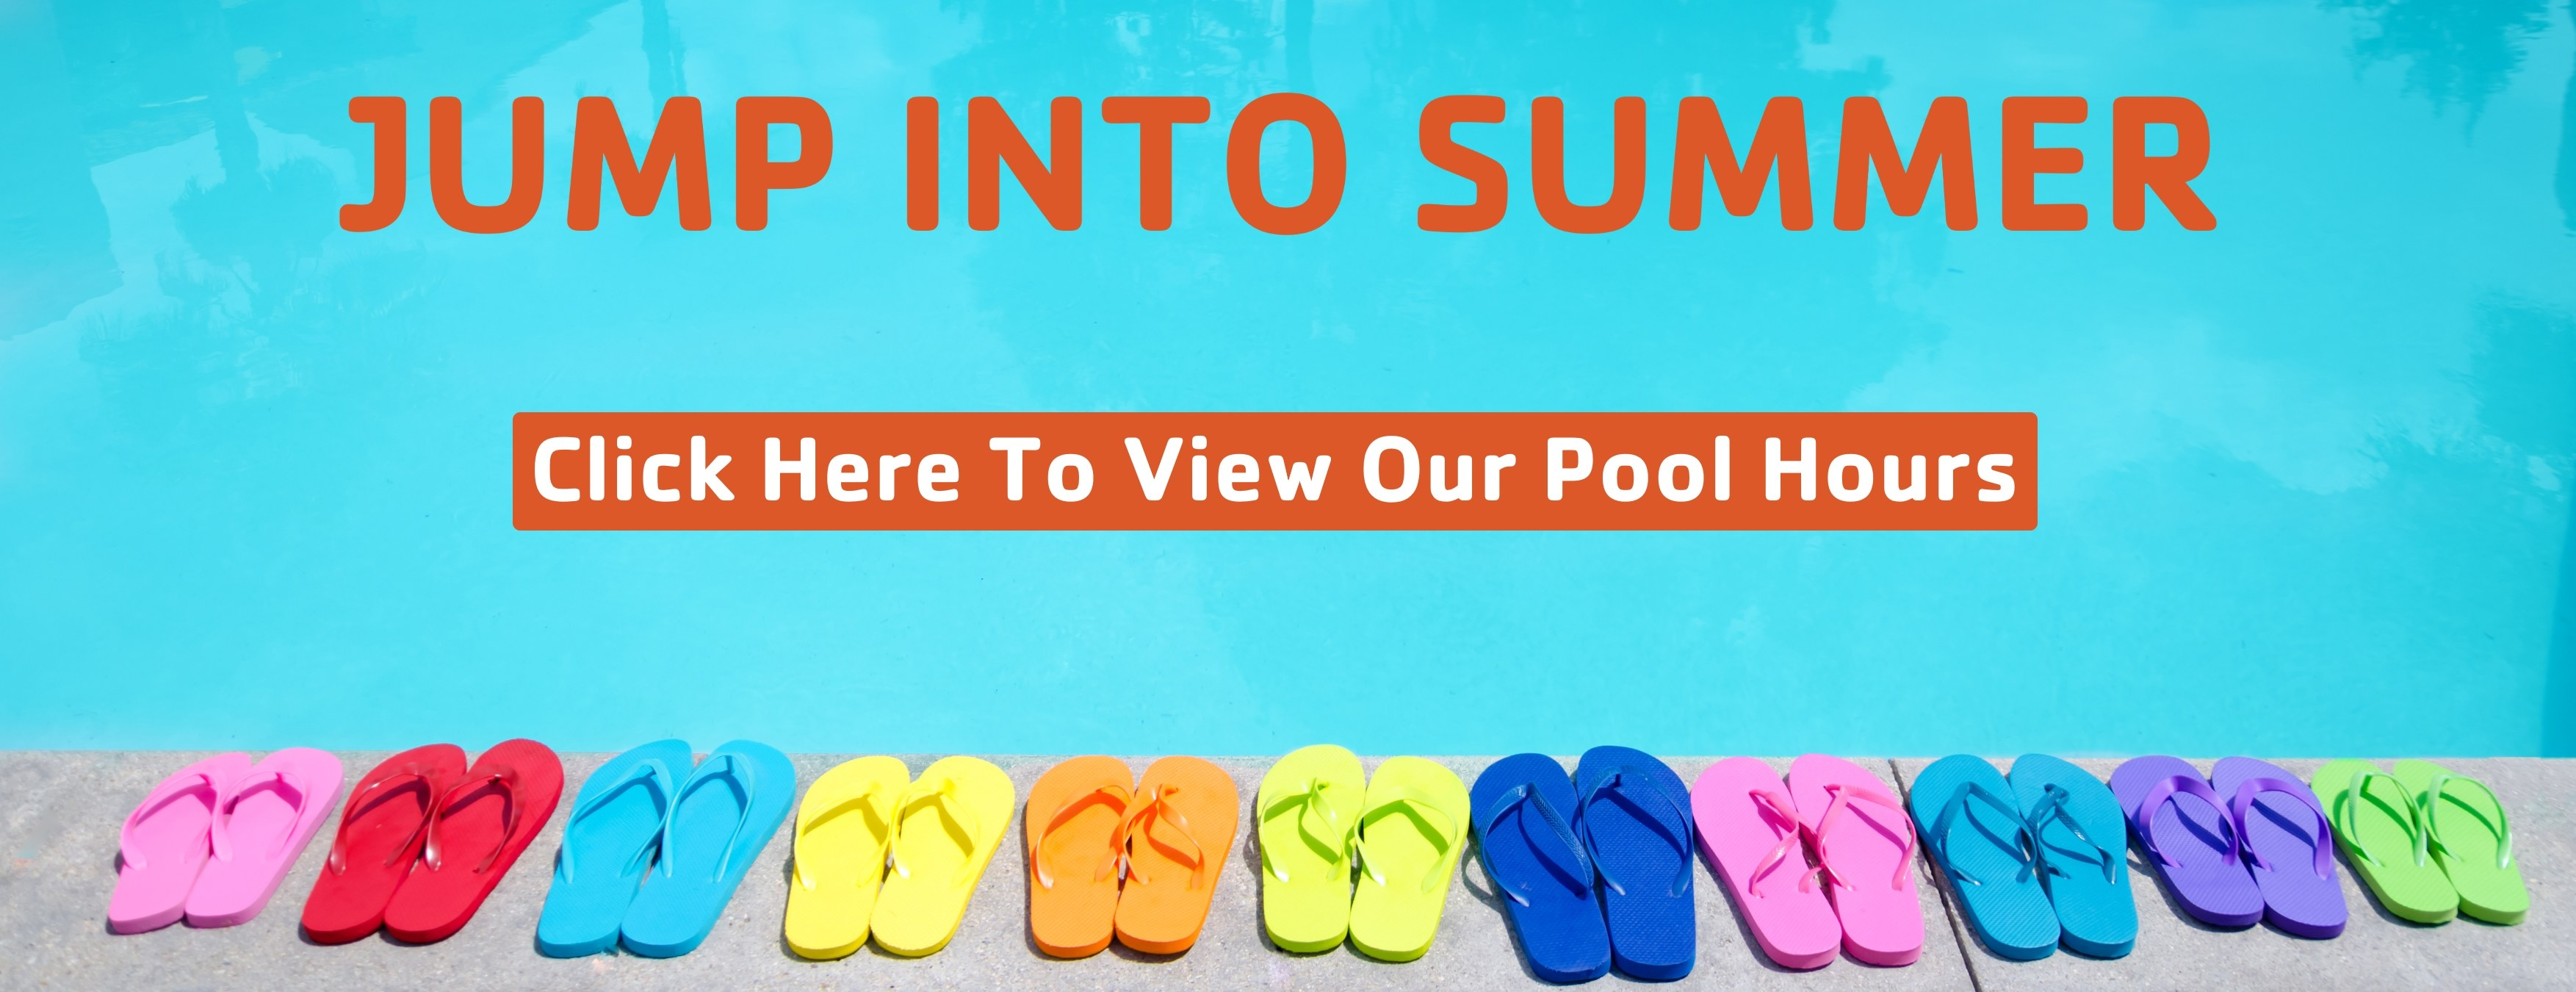 iStock_41161824_LARGE-pool-hours-web-banner